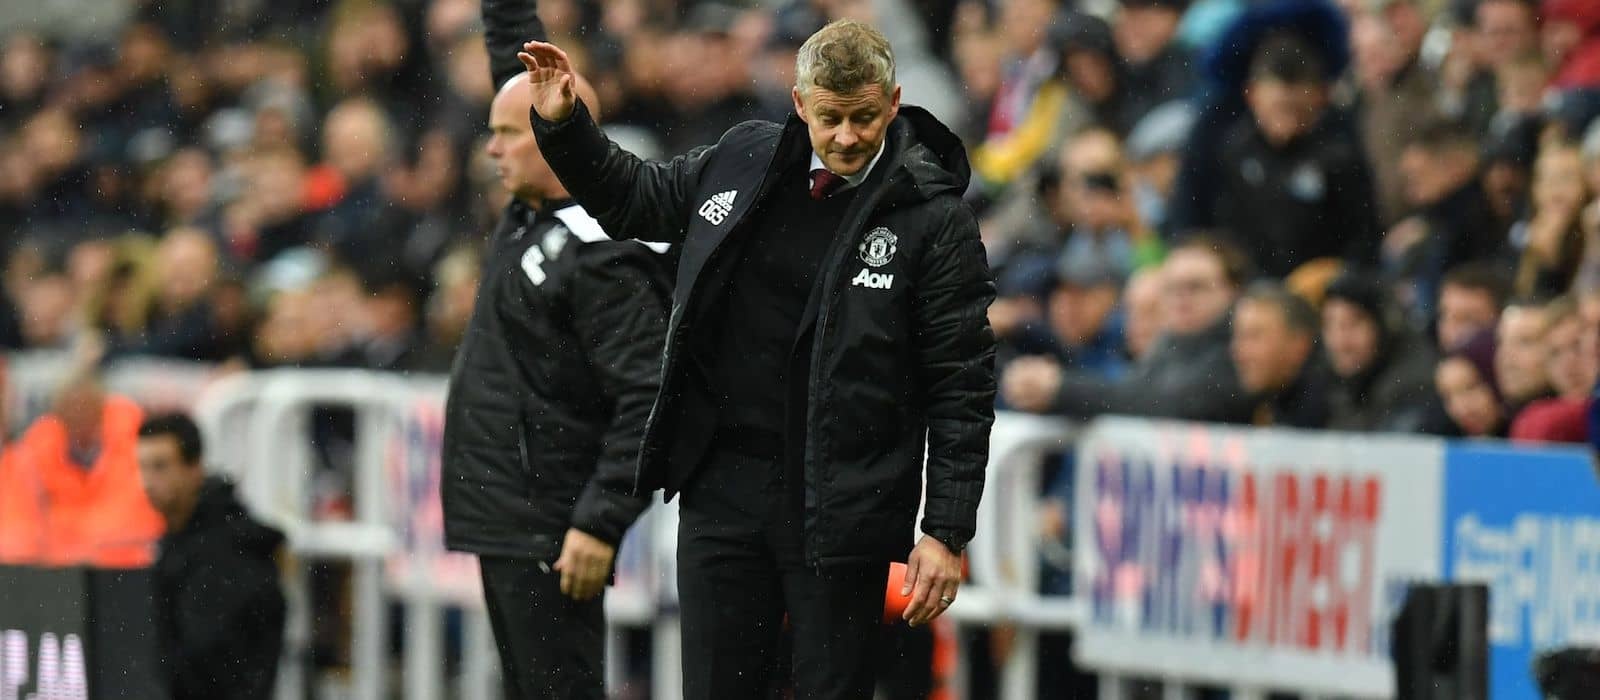 Manchester United insist Ole Gunnar Solskjaer's position is not under threat